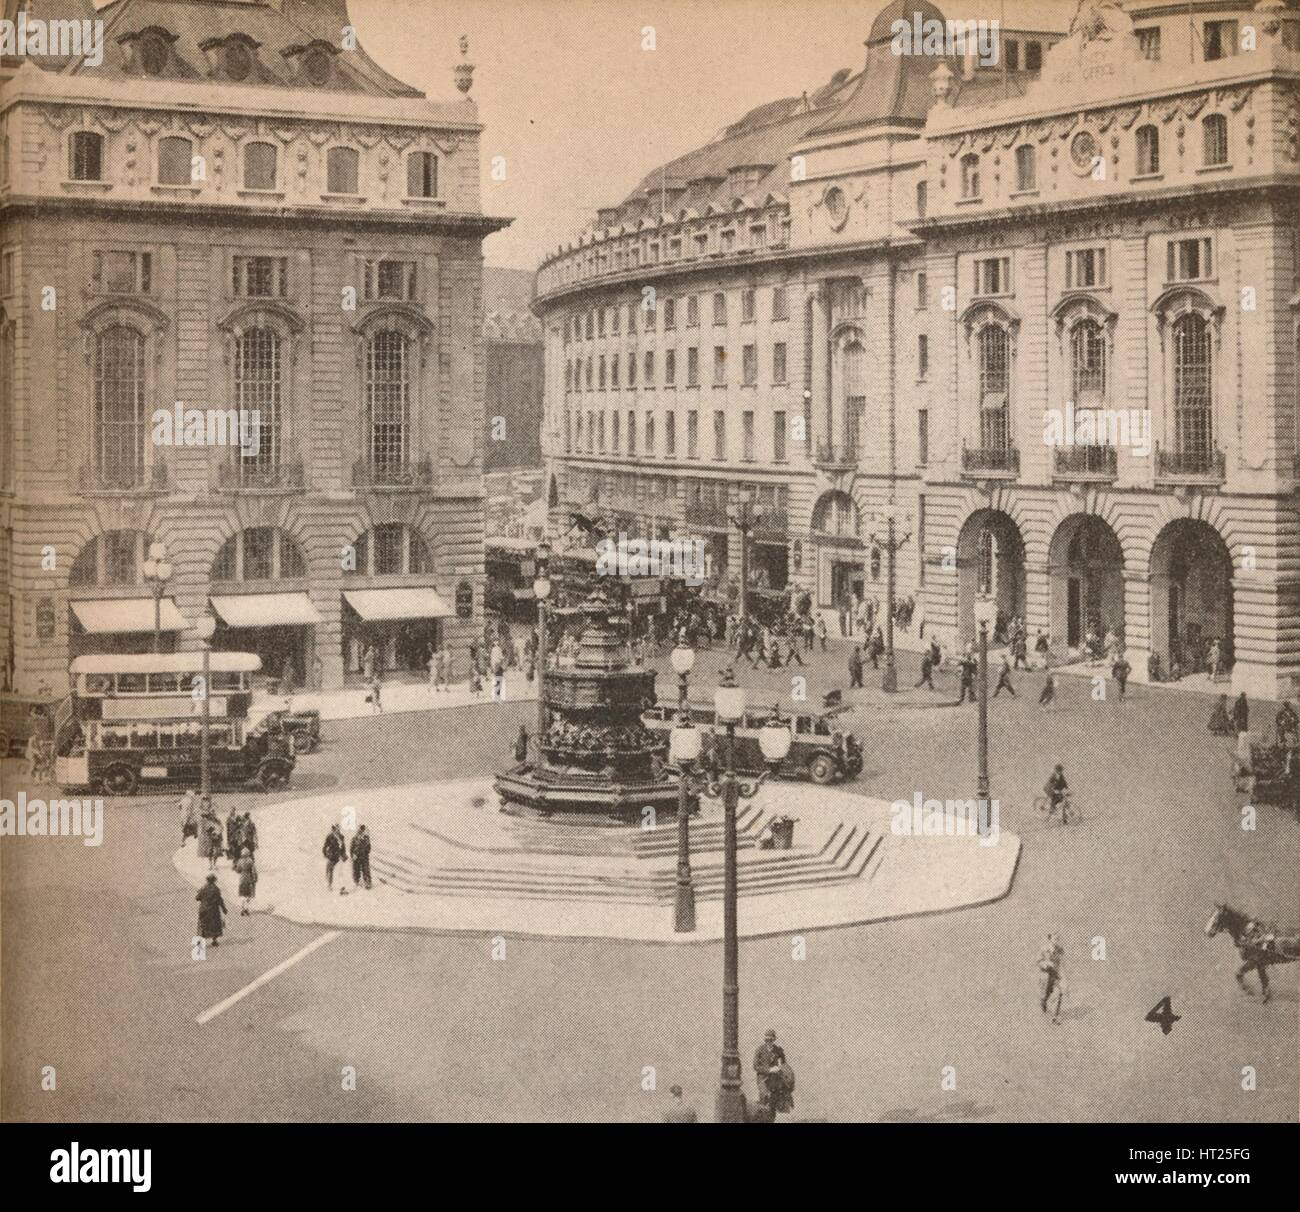 Piccadilly Circus 1931, (1935). Artist: Unknown. - Stock Image